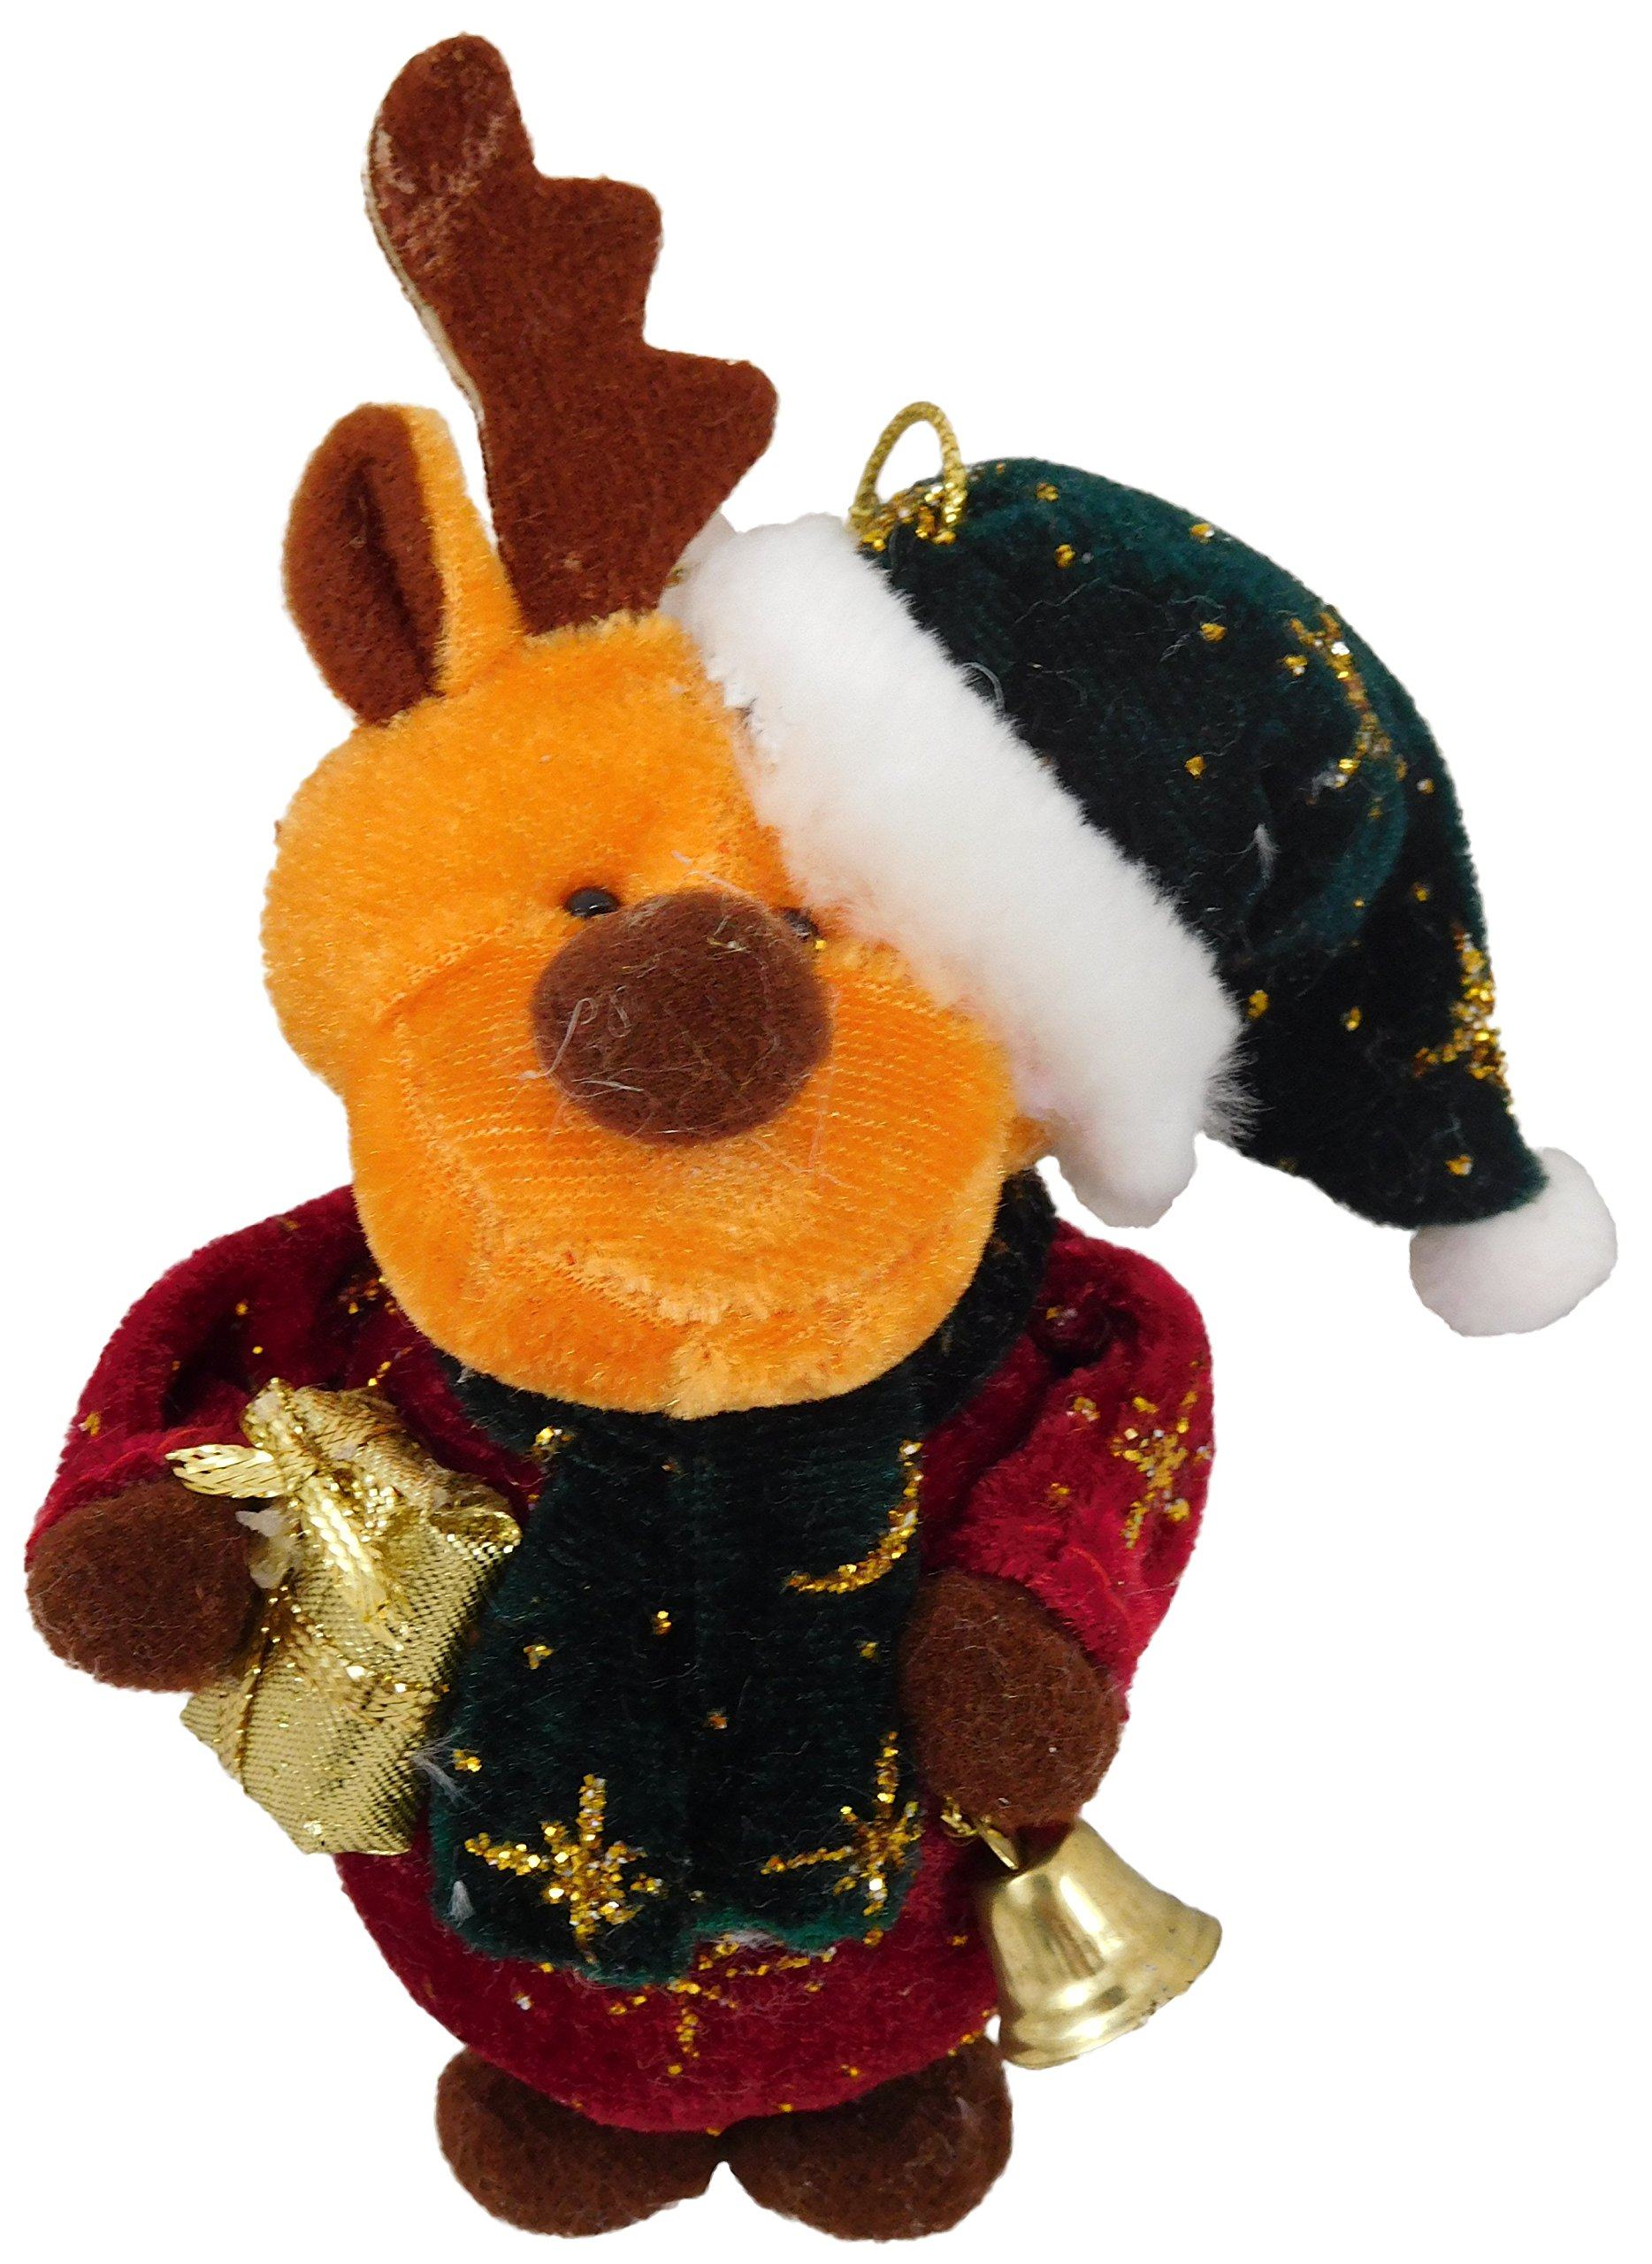 Christmas Concepts 4'' Angela's Sparkle Fabric Hanging Reindeer Christmas Tree Decoration - Reindeer with Green Hat - Cute Christmas Decorations